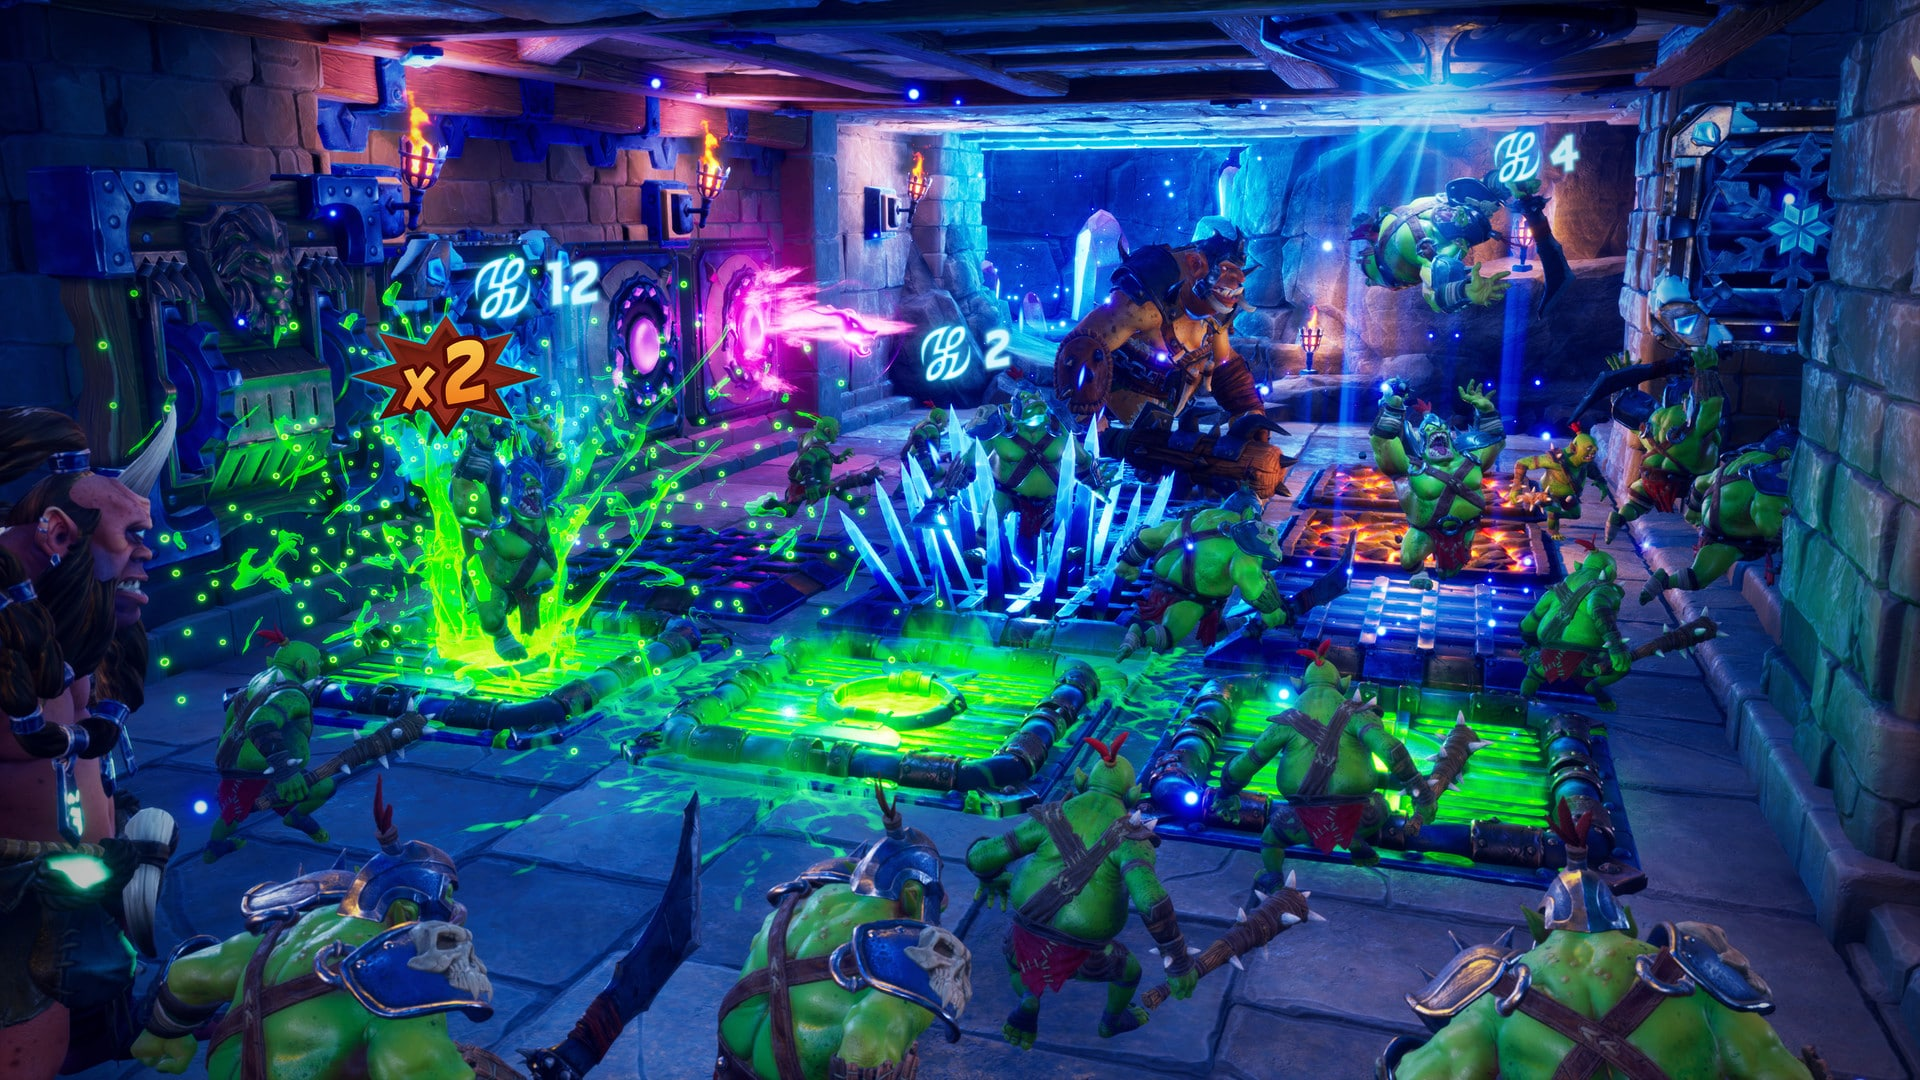 Orcs Must Die 3 Robot Entertainment what fans wanted and waited for on Steam, leaving Stadia with Drastic Steps DLC expansion